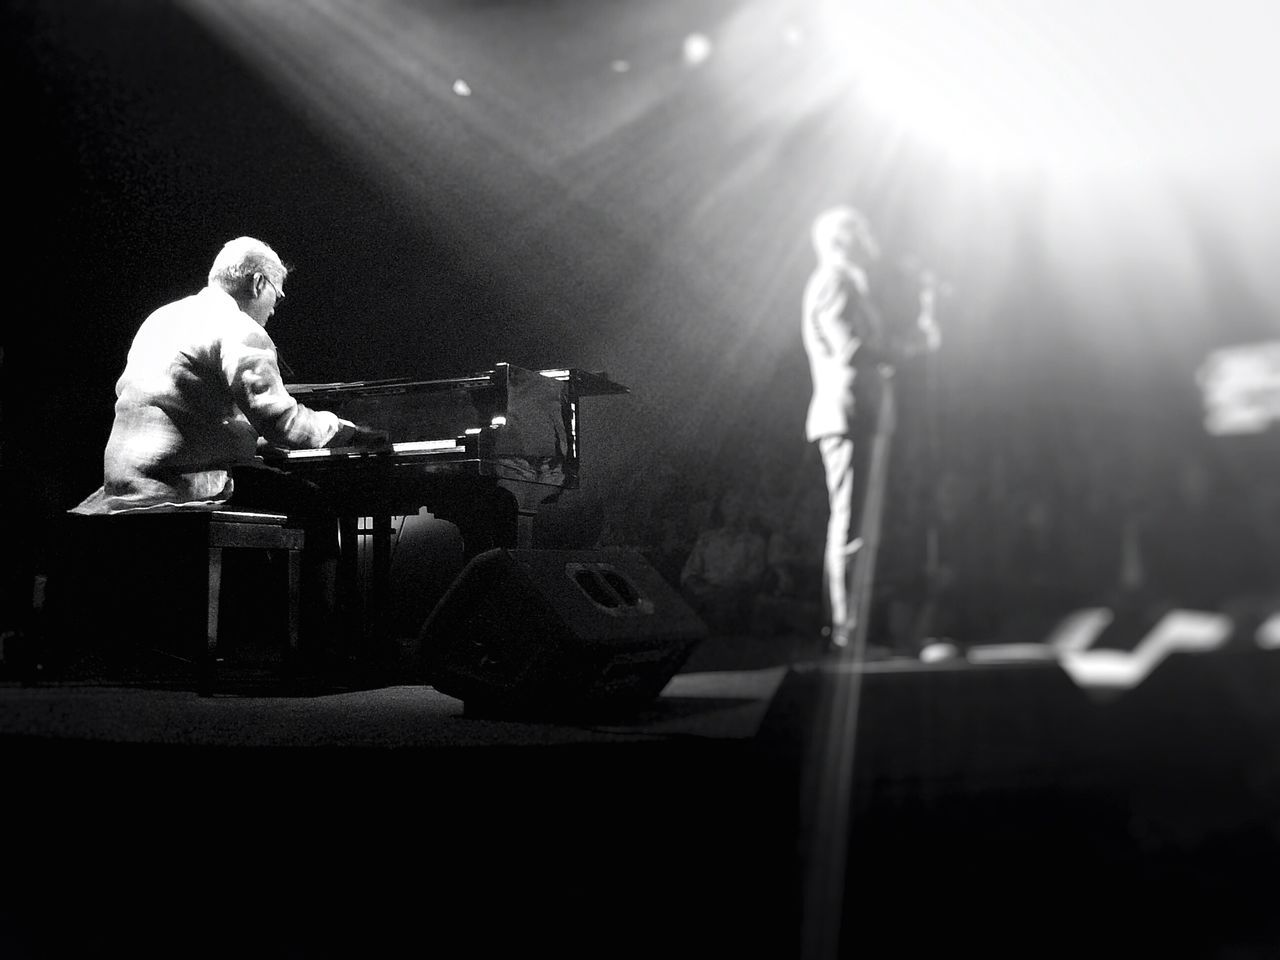 Ang Piyanista Pianist Pianists Concert Theatre & Music  Theater Music Piano Musical Instruments Music Is My Life Eyeem Collection Keyboardist Performer  Musician Blackandwhite Singer  Black And White Singer And Artist Black And White Photography Monochrome Fine Art Photography Light And Shade Eyeem Philippines EyeEm Best Shots EyeEm Best Shots - Black + White Philippines